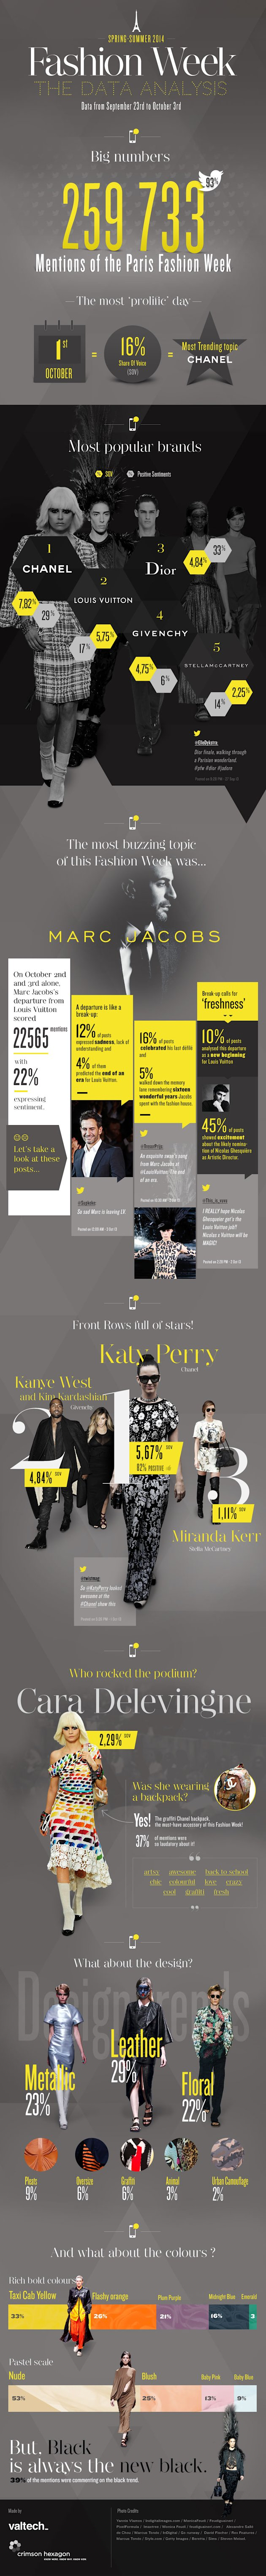 Runway Buzz: Social Media Analysis of Paris Fashion Week image valtech infographie fw2014 60